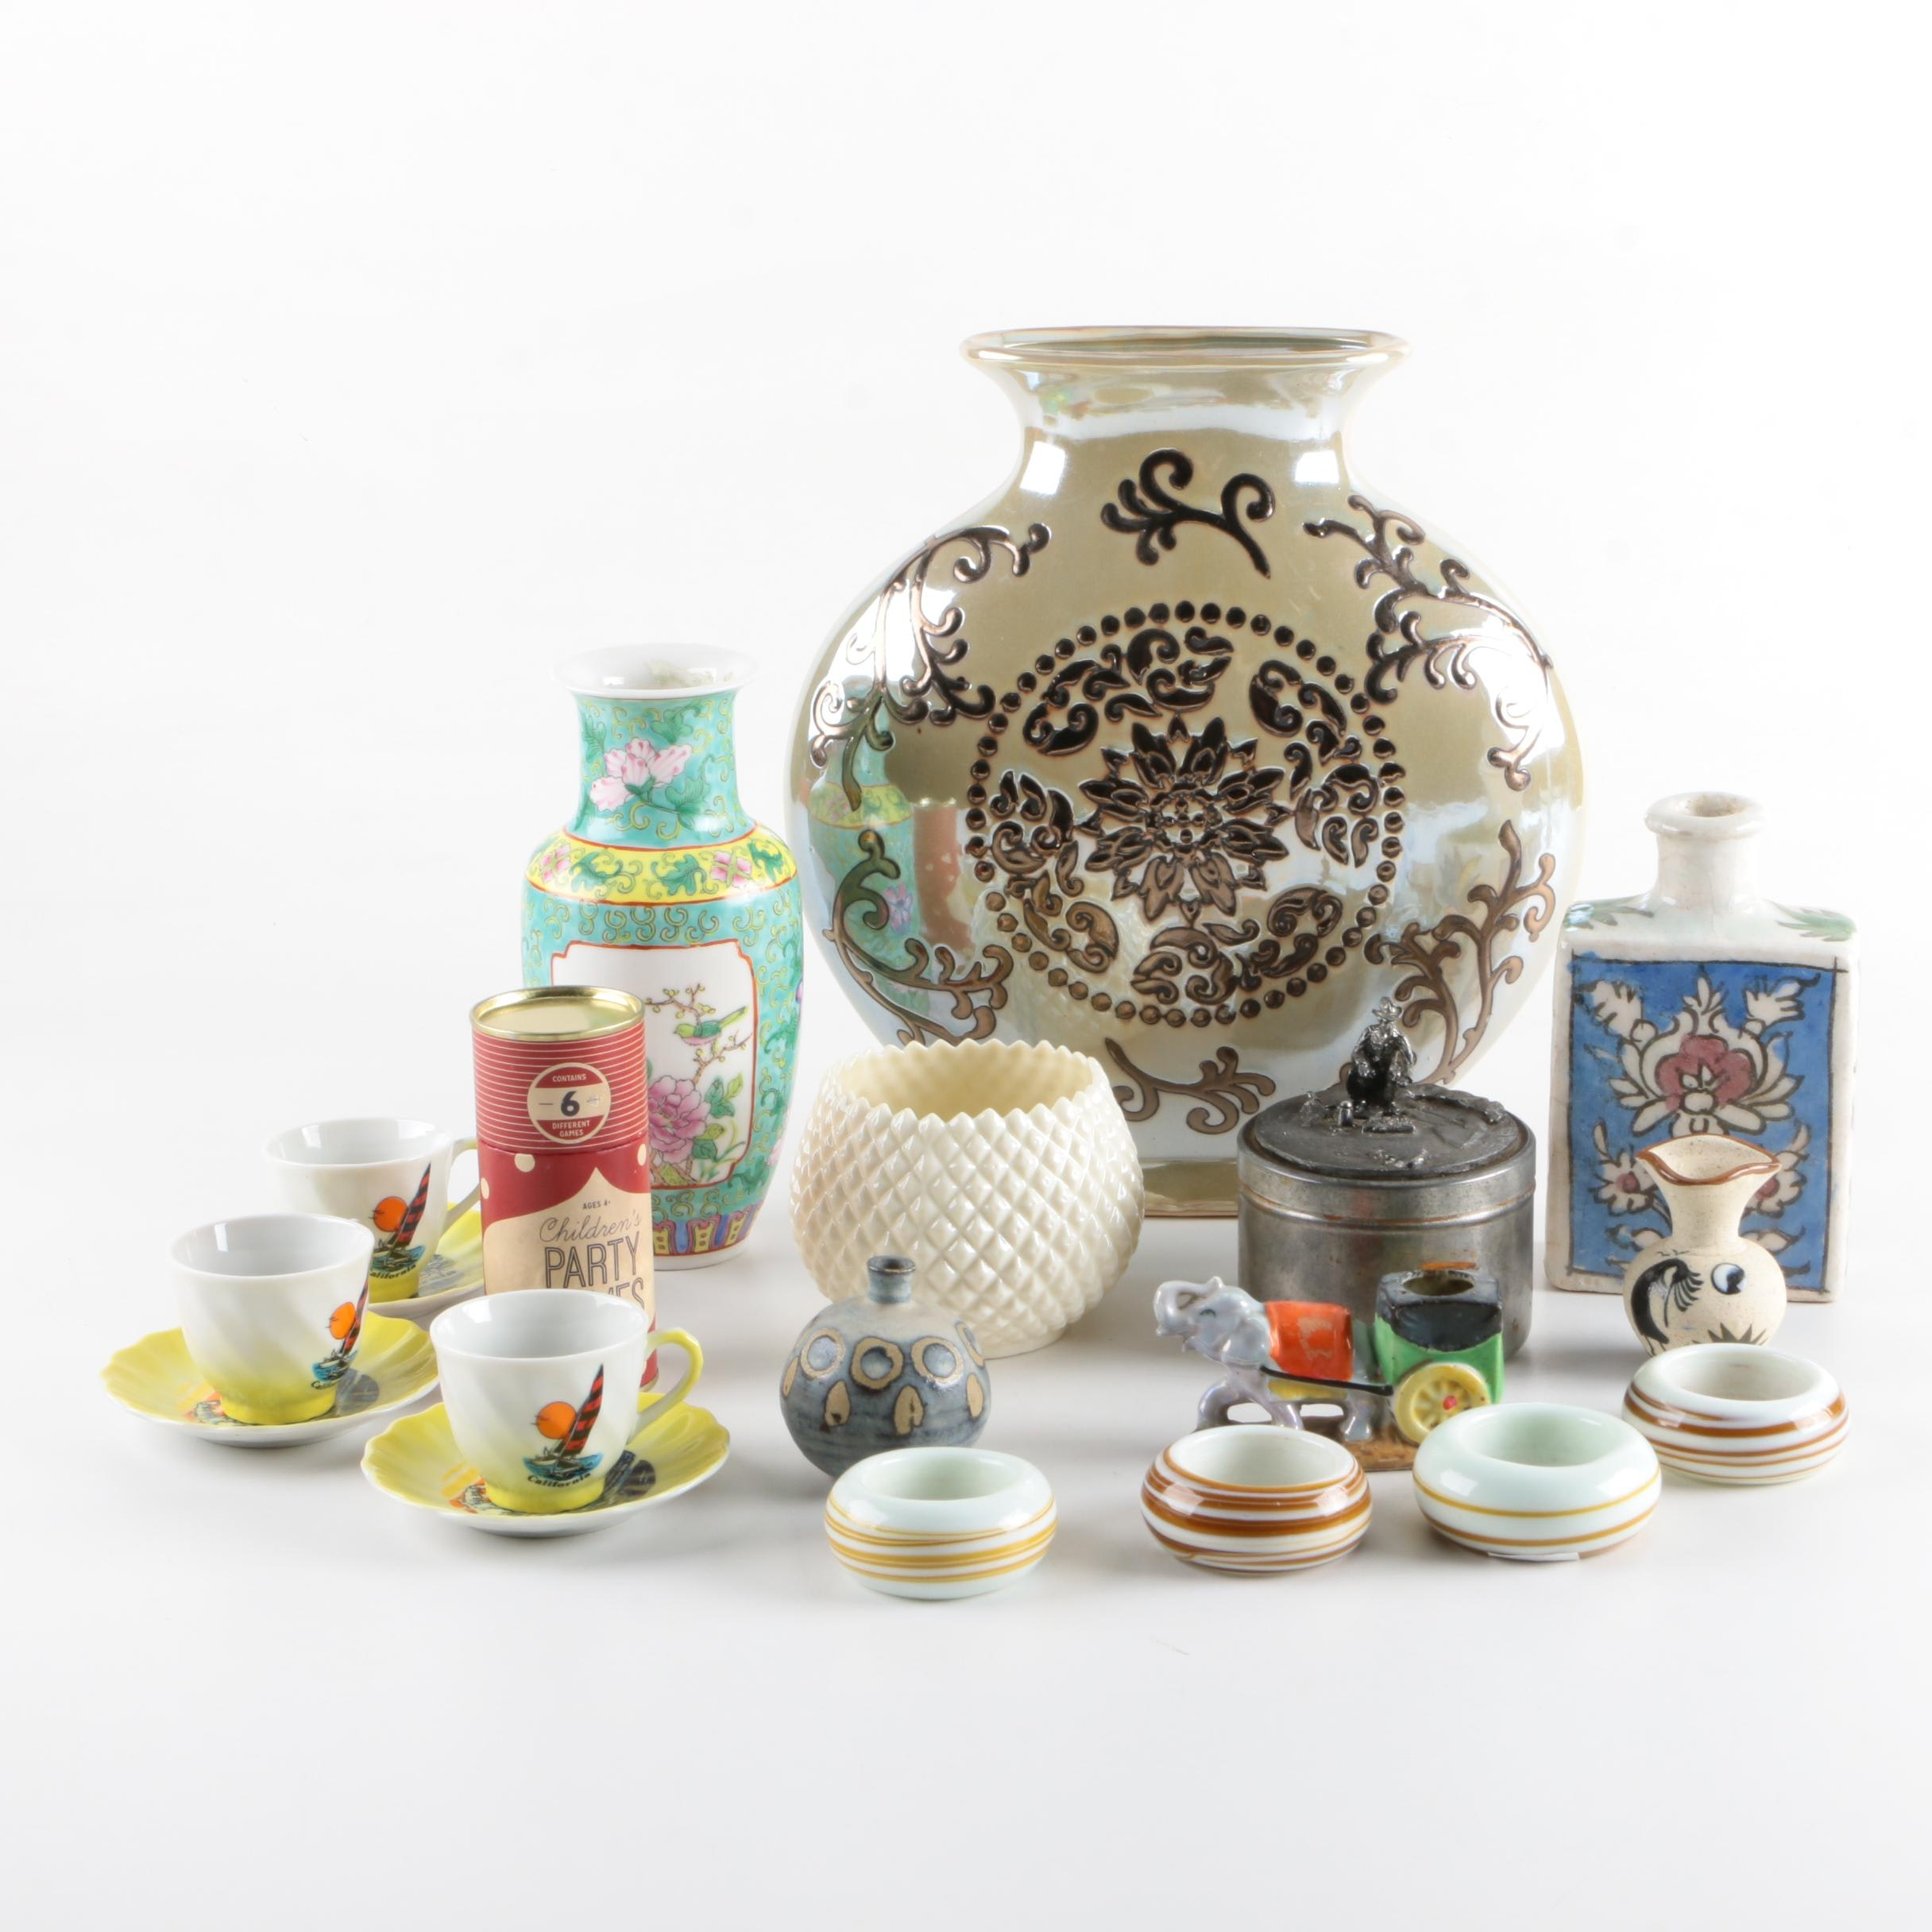 Ceramic, Glass, and Metal Décor, Vases, and Tableware